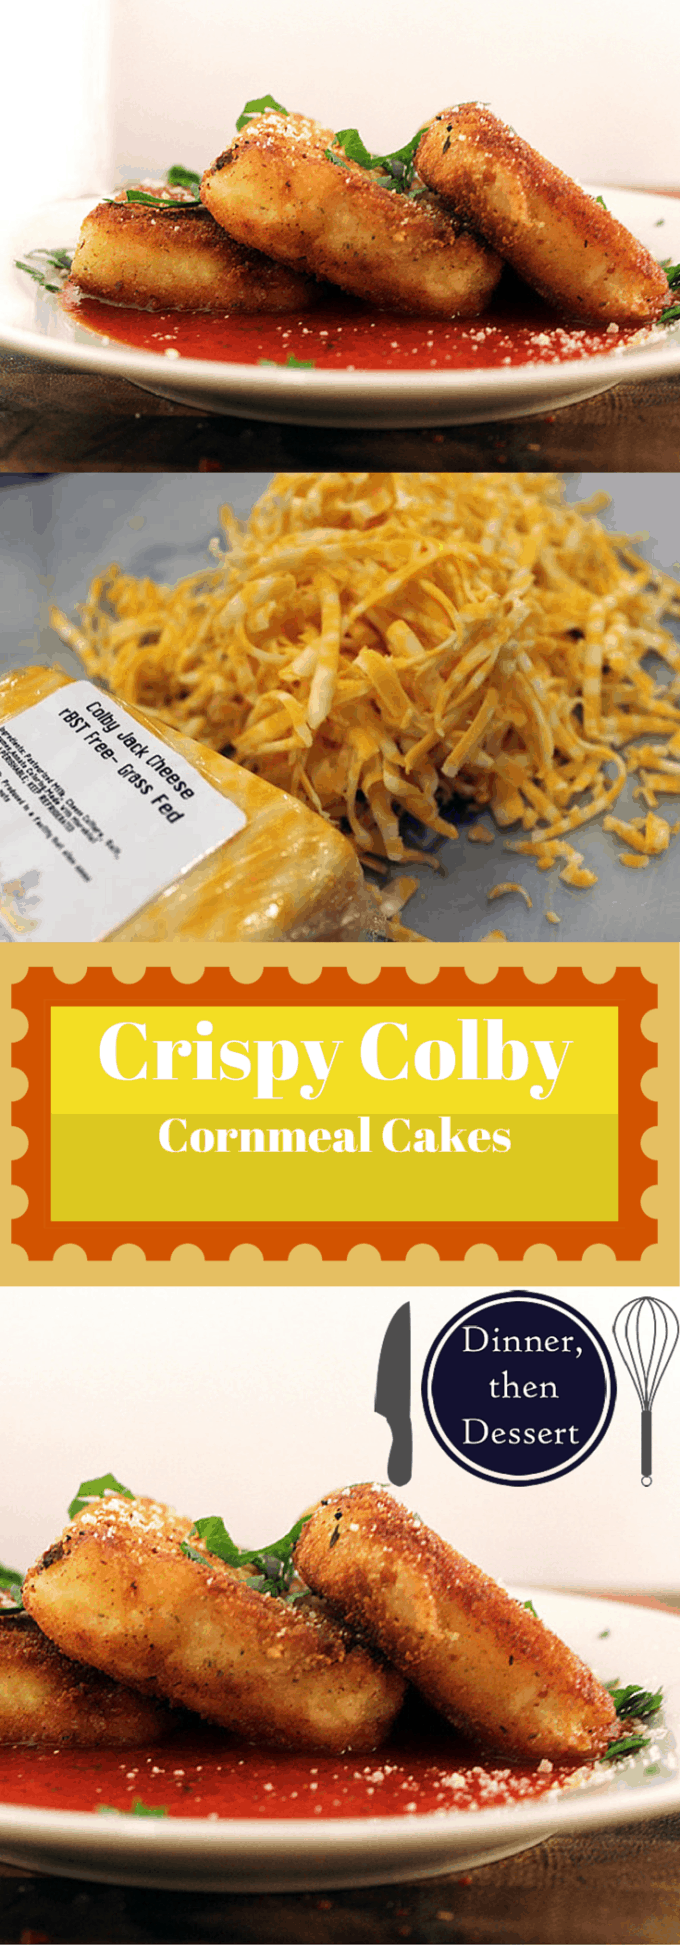 Delicious crispy cheesy polenta cakes with tomato sauce. They're like a cross between a cheese stick and cornbread.